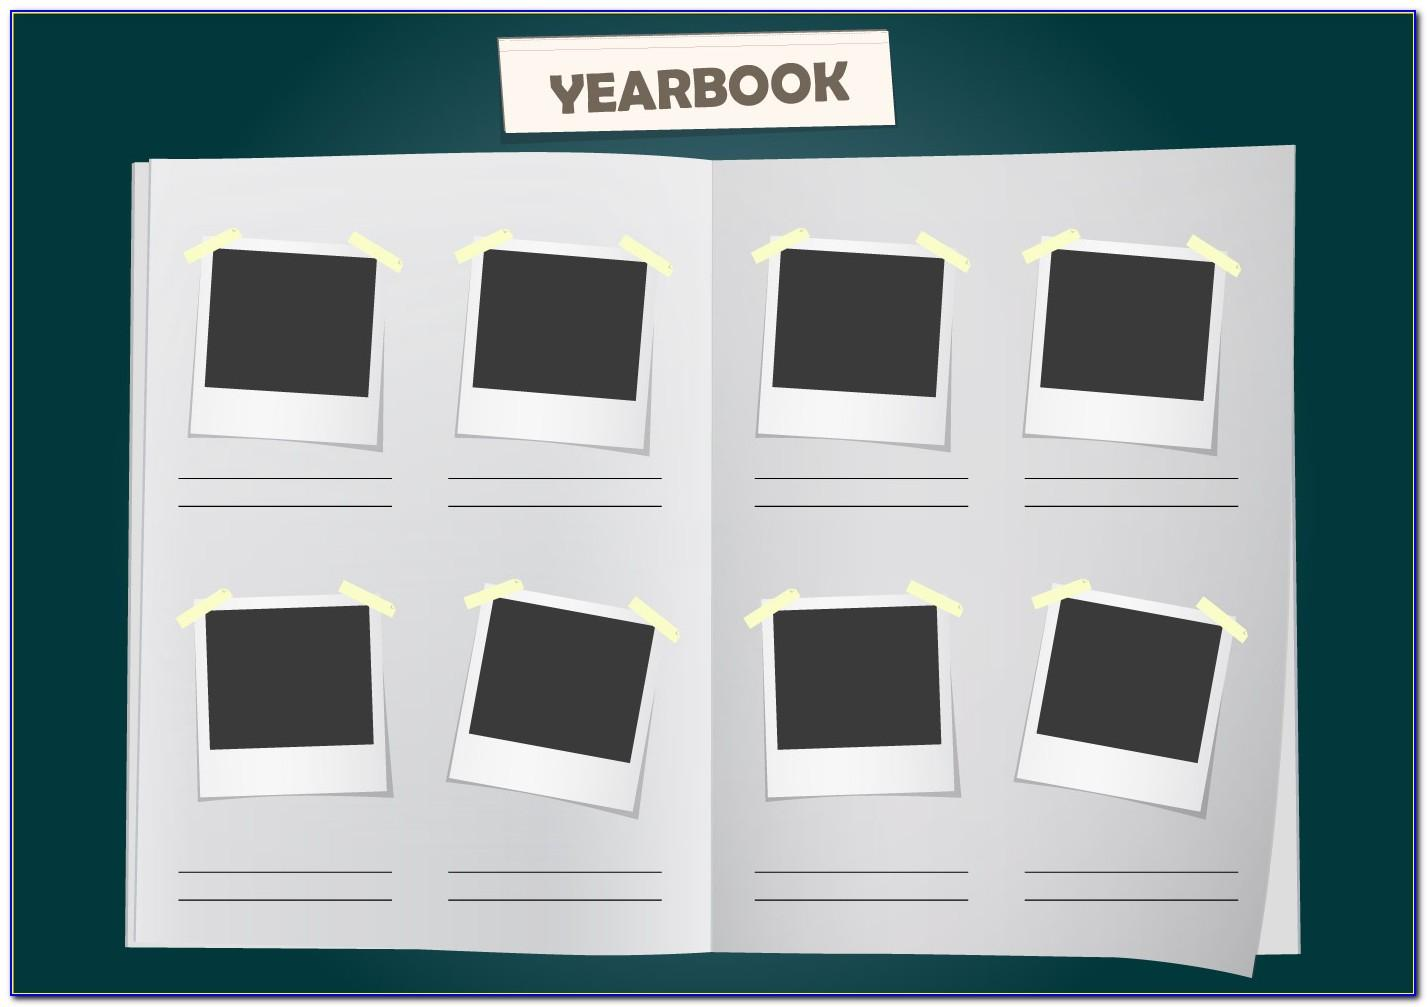 Yearbook Design Template Photoshop